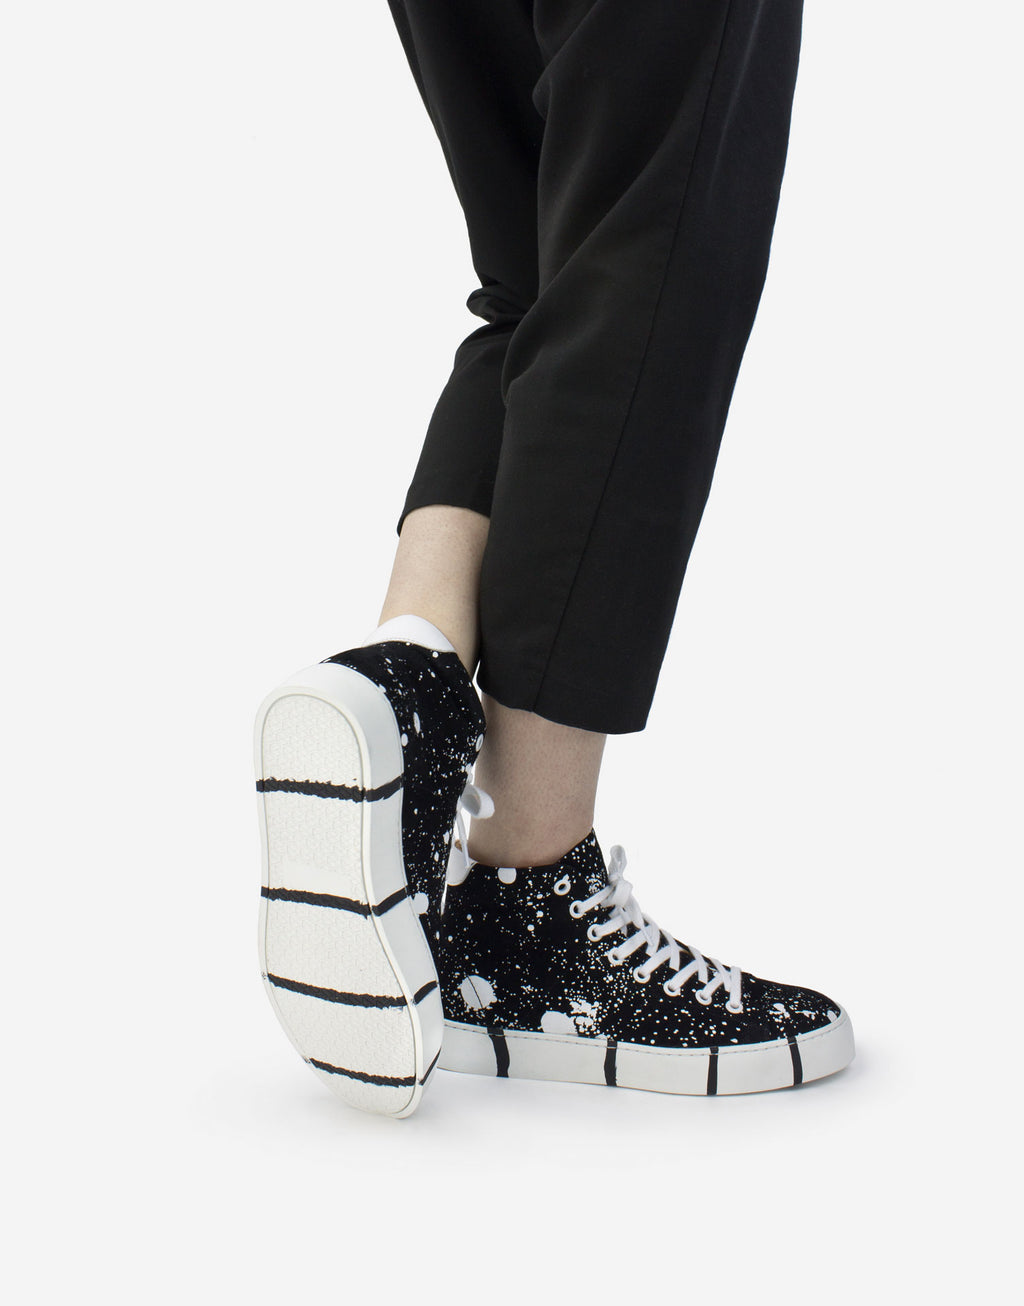 Black and white splash sneaker art to wear with signature striped soles by Georgina Goodman